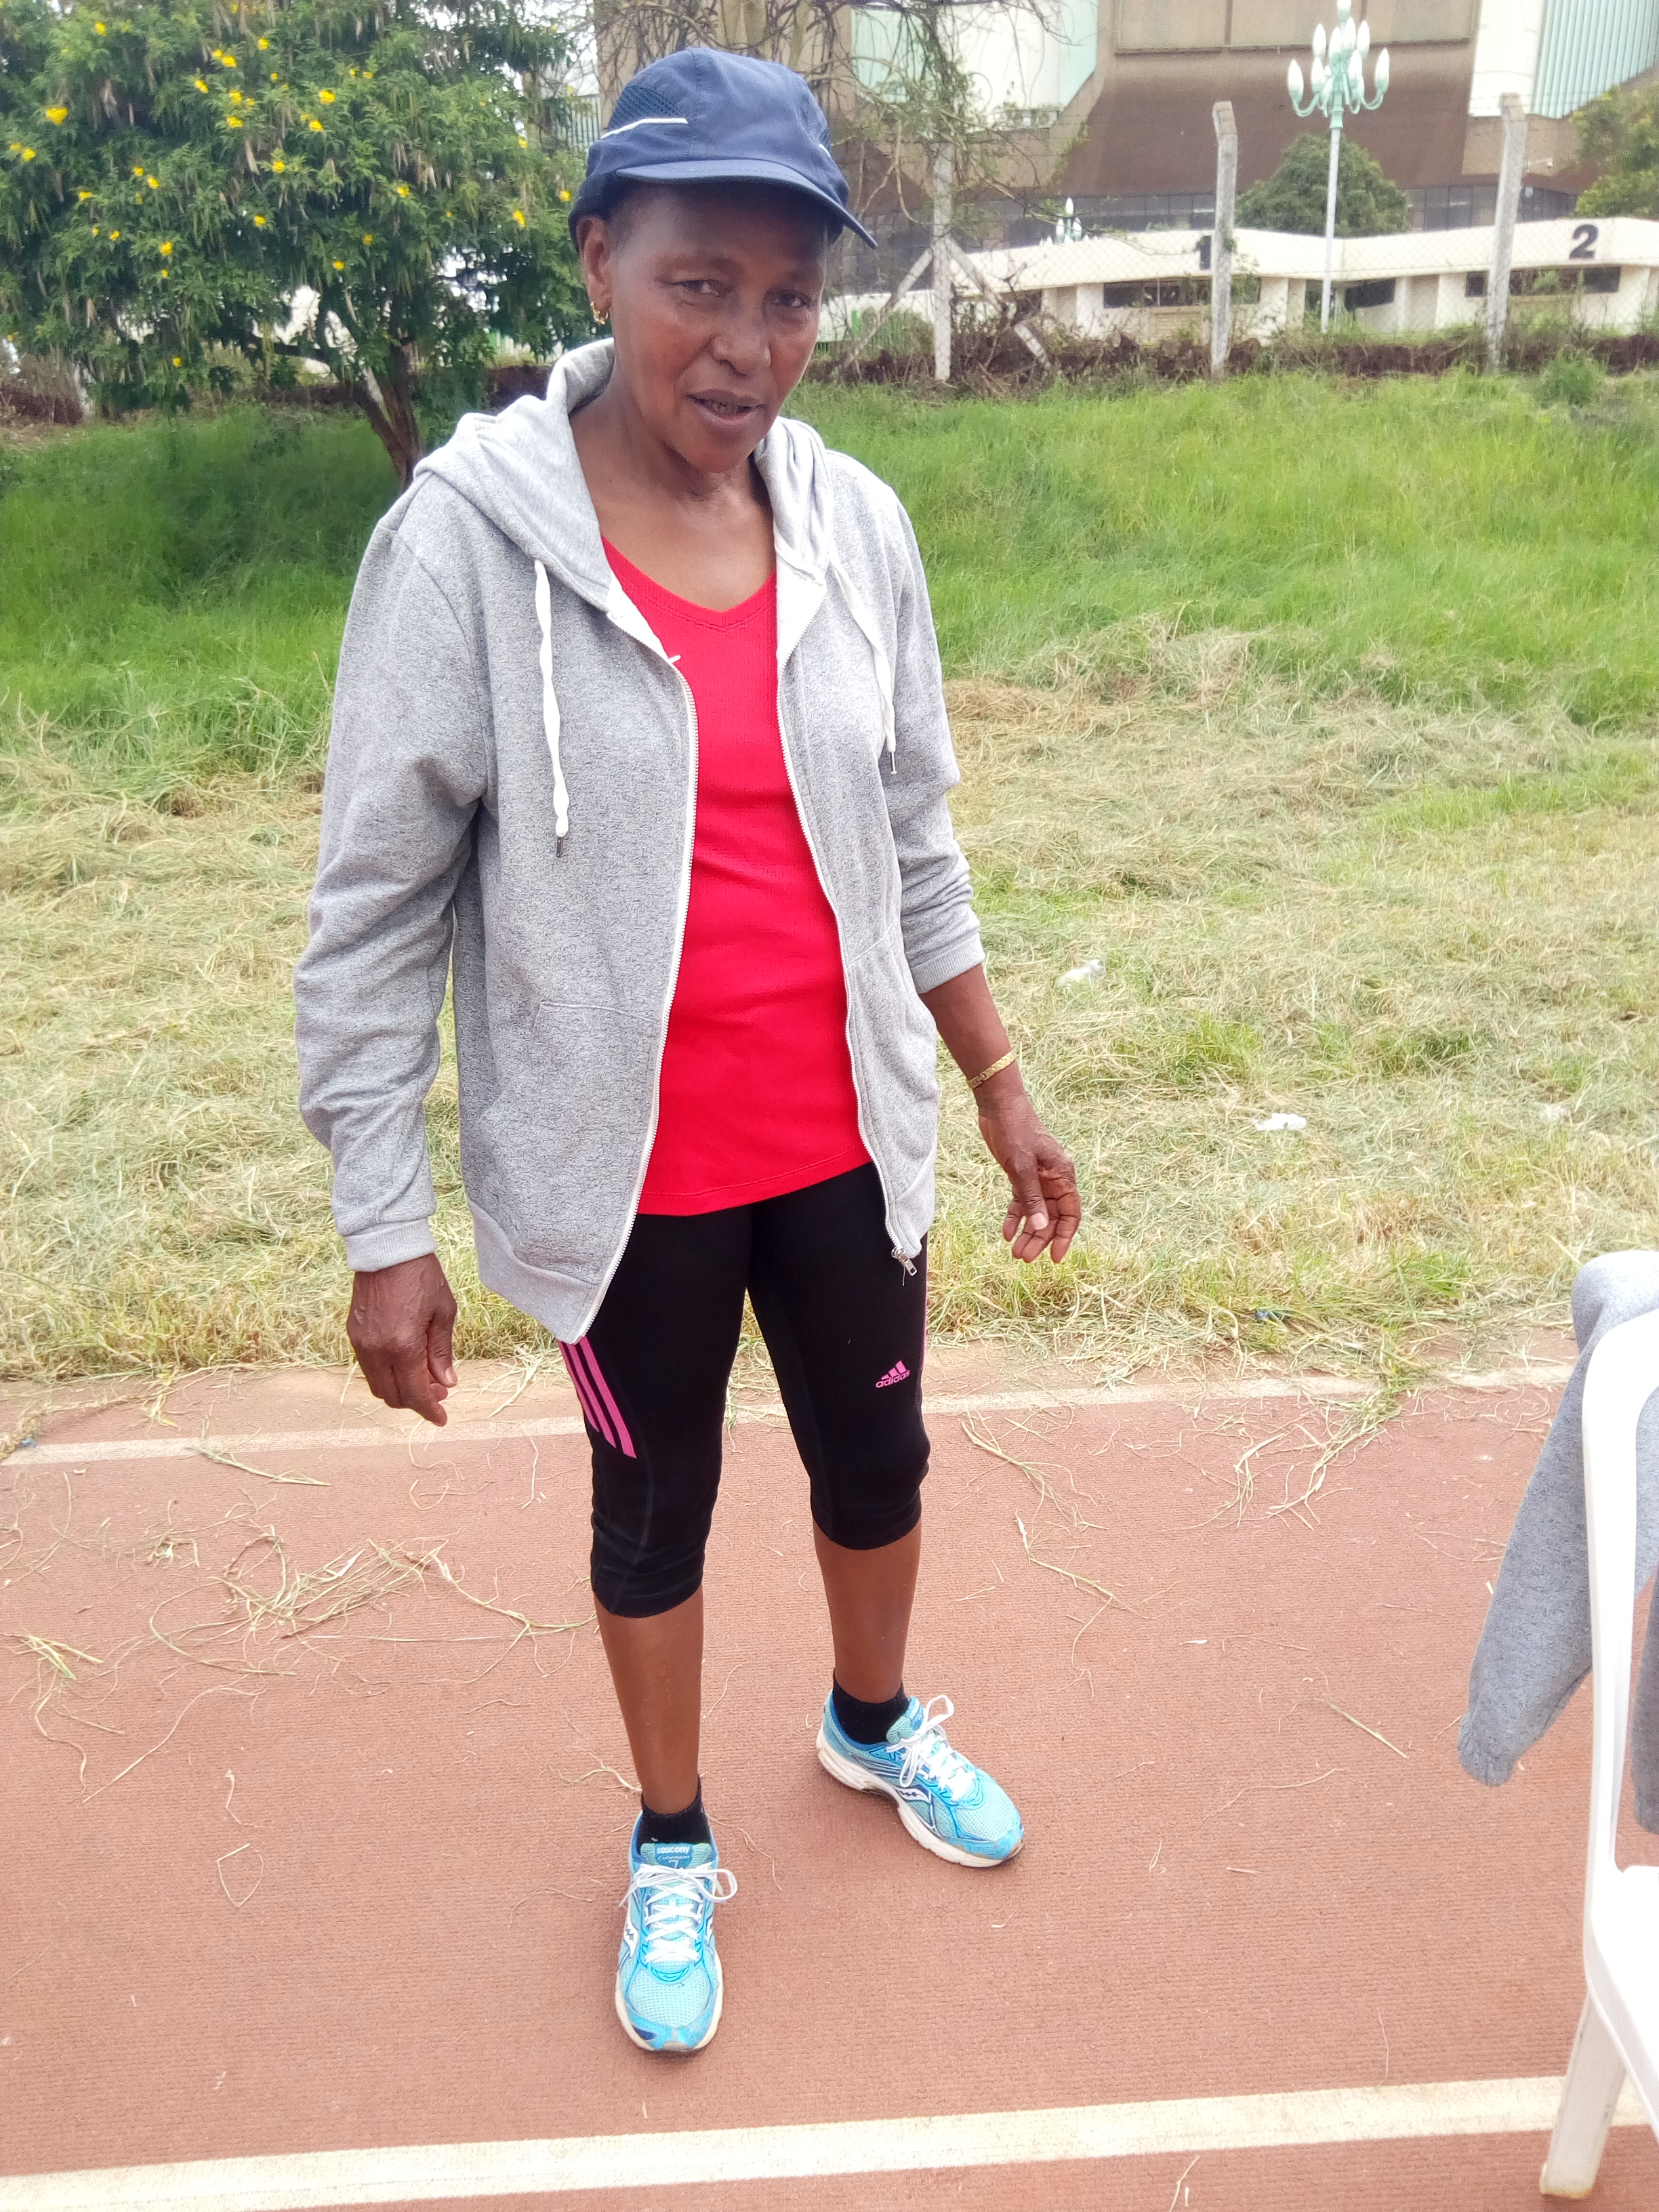 retired athlete of 400m and 200m